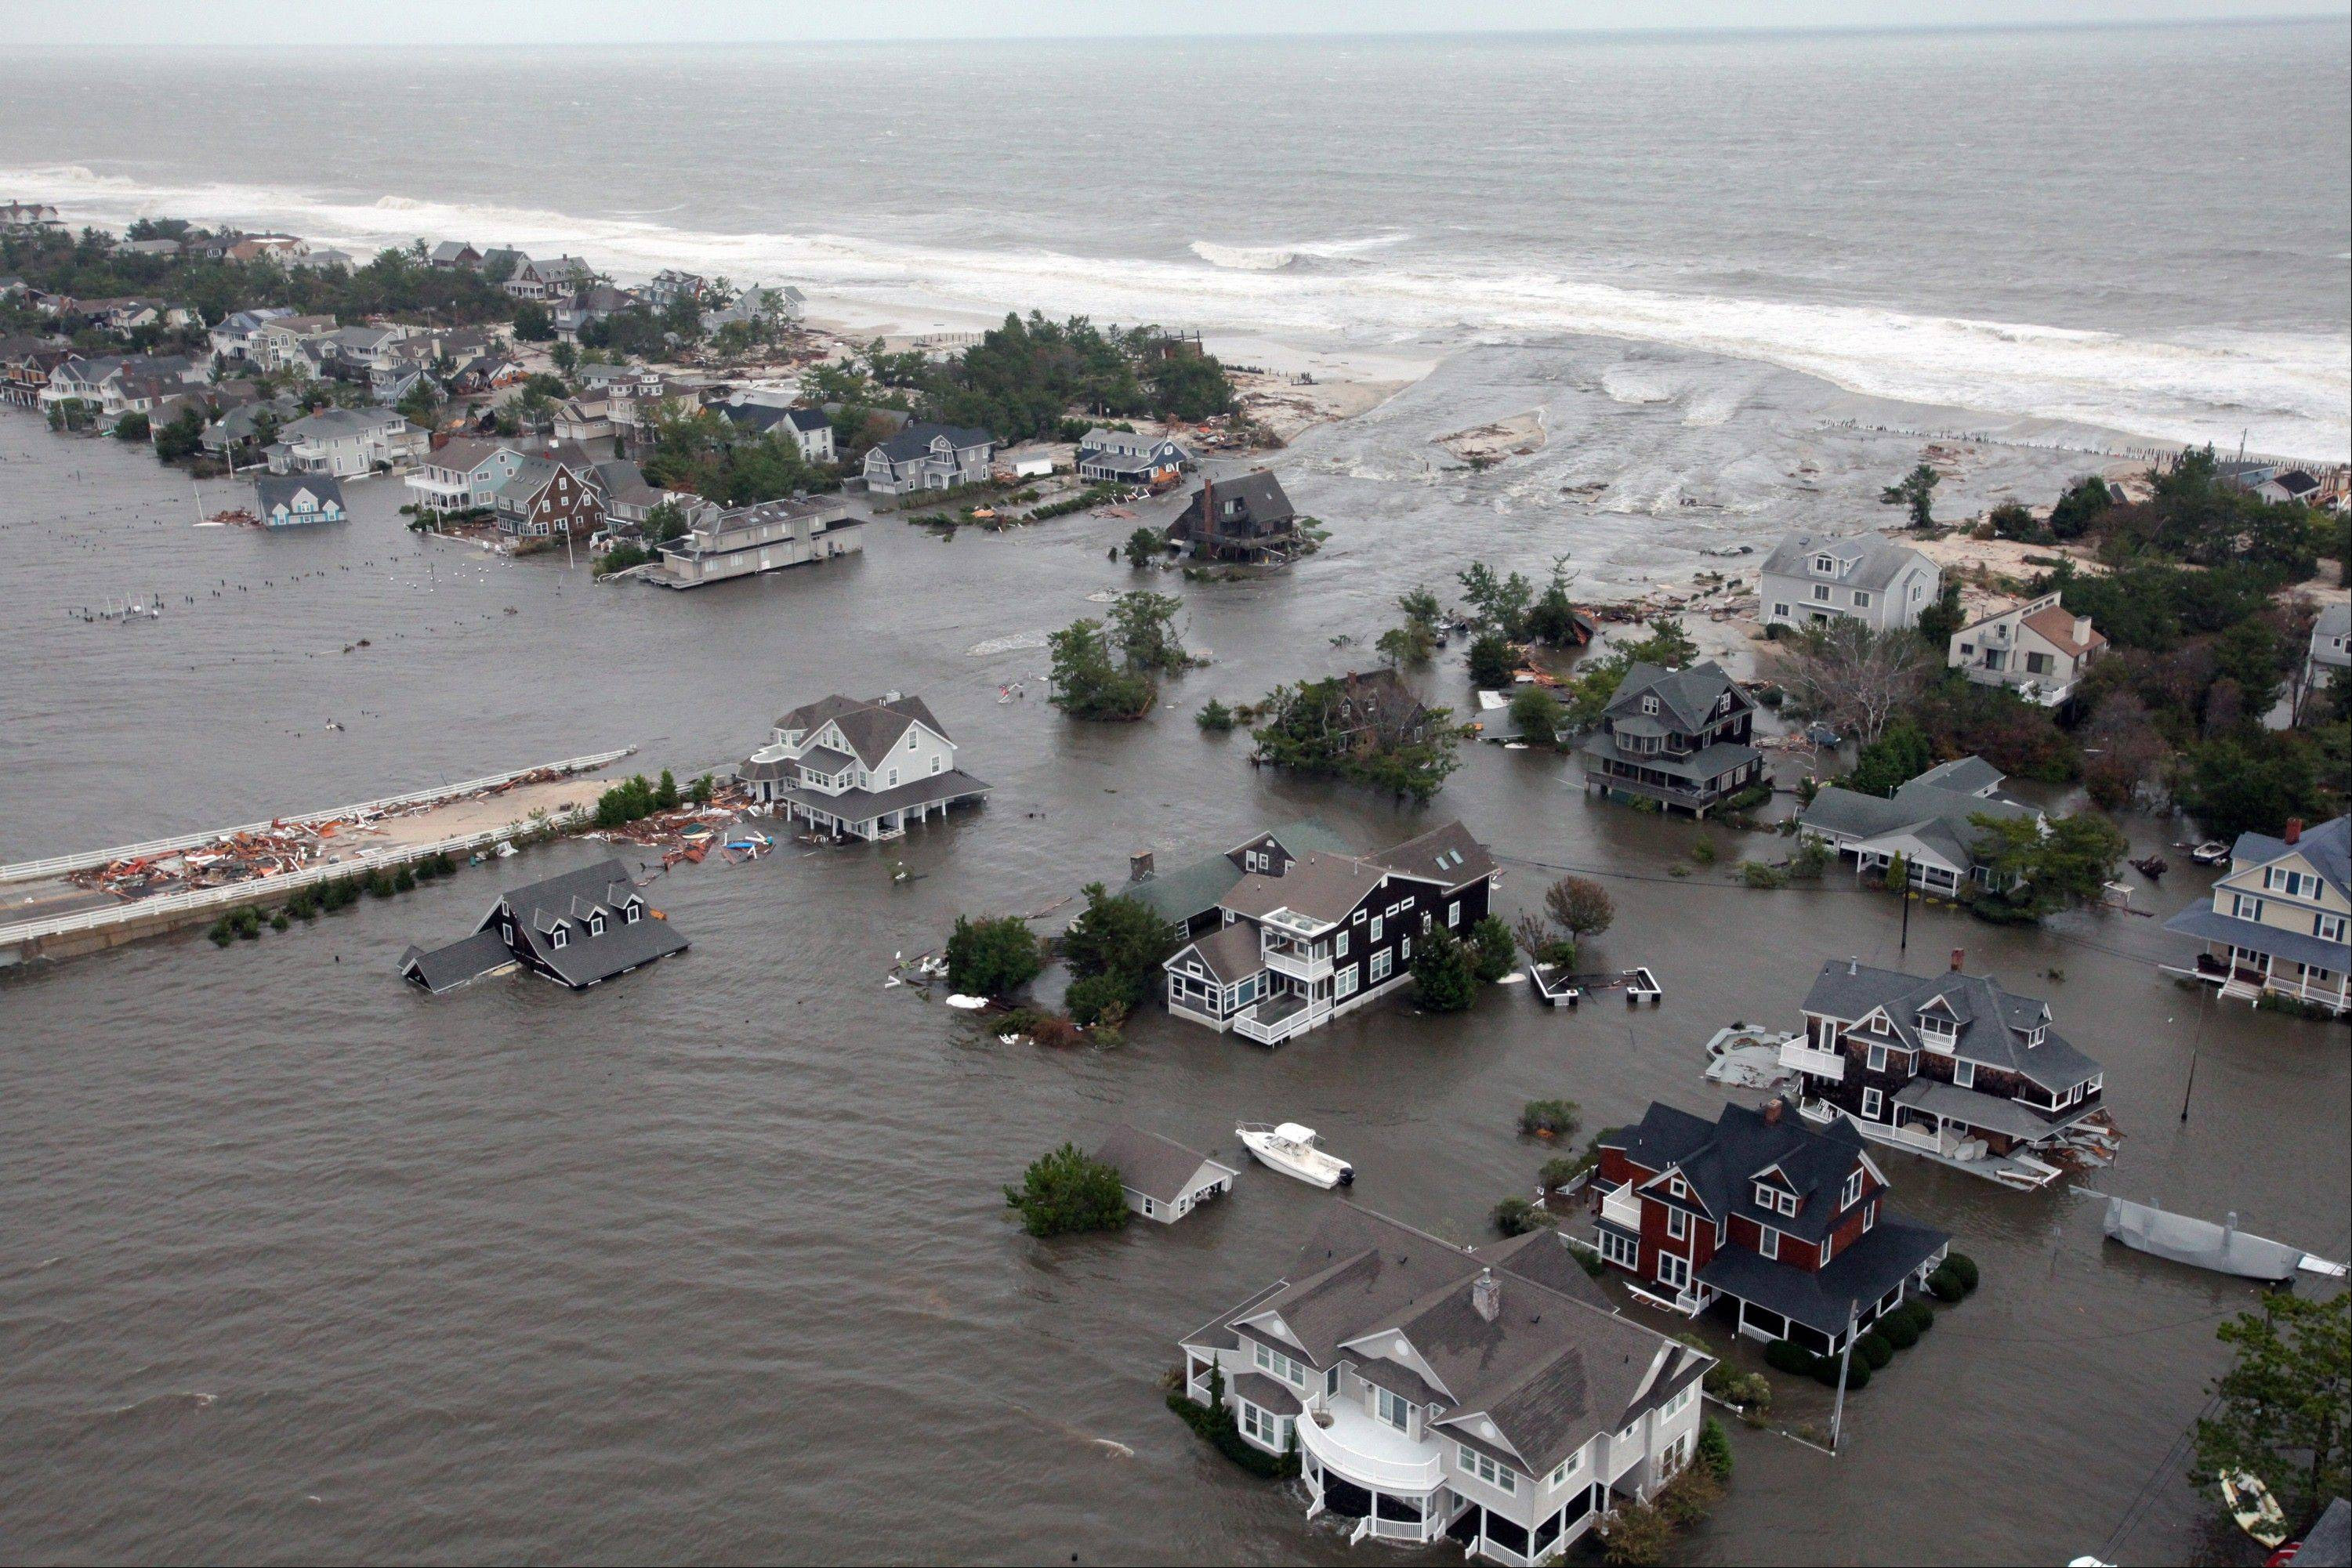 This Oct. 30, 2012 aerial photo provided by the U. S. Air Force shows flooding on the New Jersey shoreline during a search and rescue mission by 1-150 Assault Helicopter Battalion, New Jersey Army National Guard. By late Tuesday, the winds and flooding inflicted by the fast-weakening Superstorm Sandy had subsided, leaving at least 55 people dead along the Atlantic Coast and splintering beachfront homes and boardwalks from the mid-Atlantic states to southern New England.